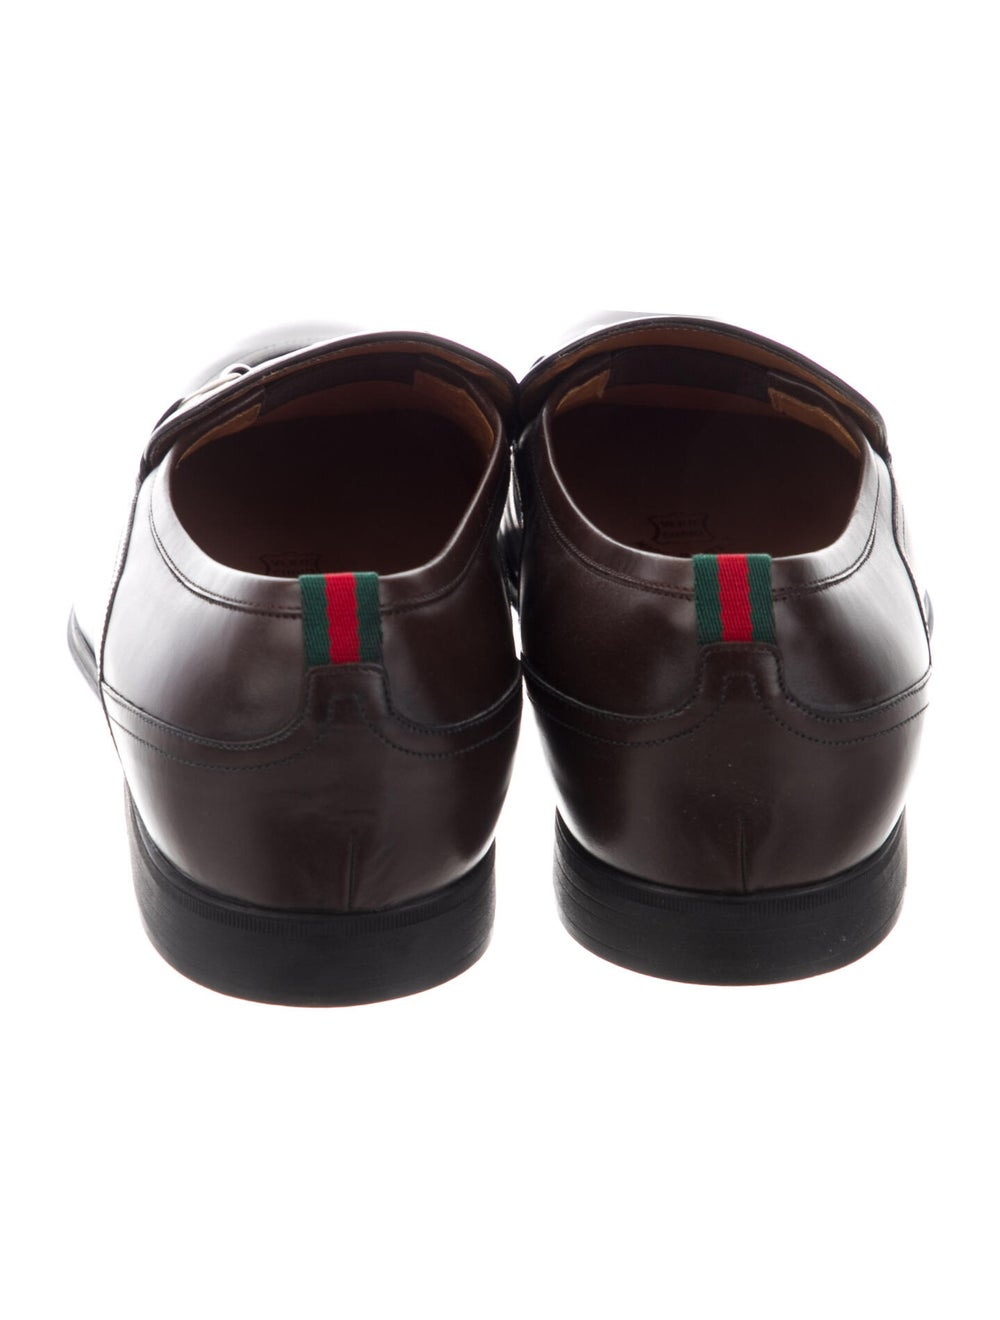 Gucci Horsebit Accent Leather Dress Loafers Brown - image 4